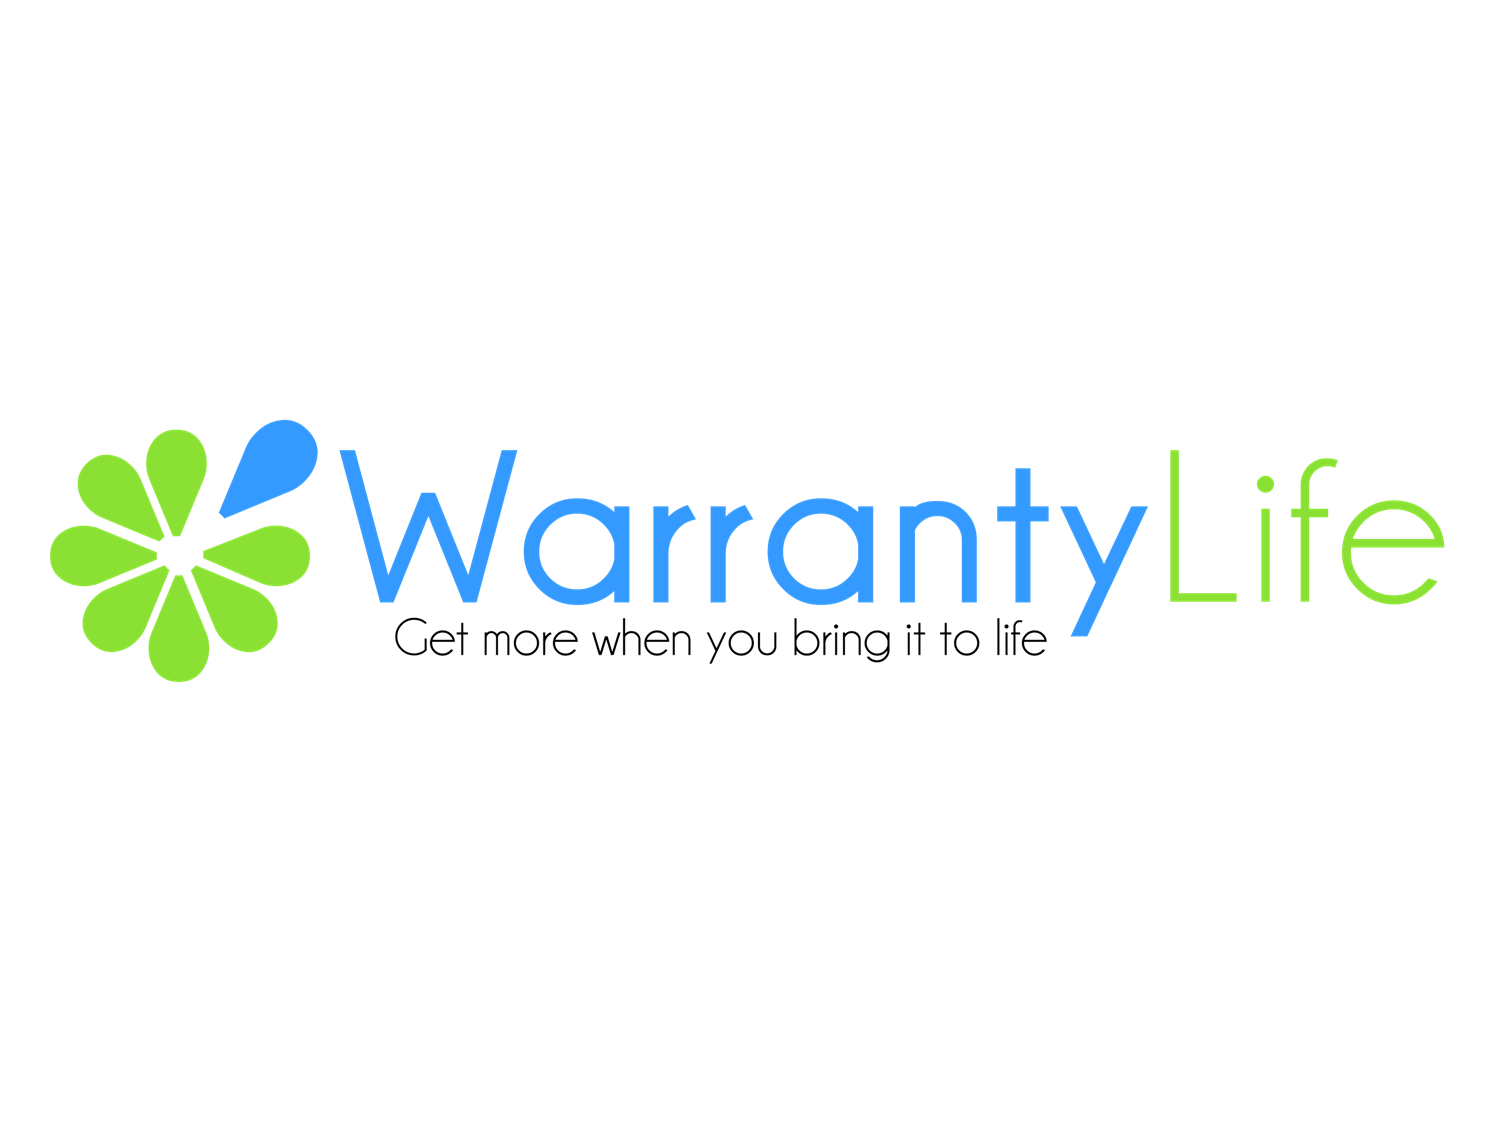 Logo Design by Taylor Anderson - Entry No. 94 in the Logo Design Contest WarrantyLife Logo Design.